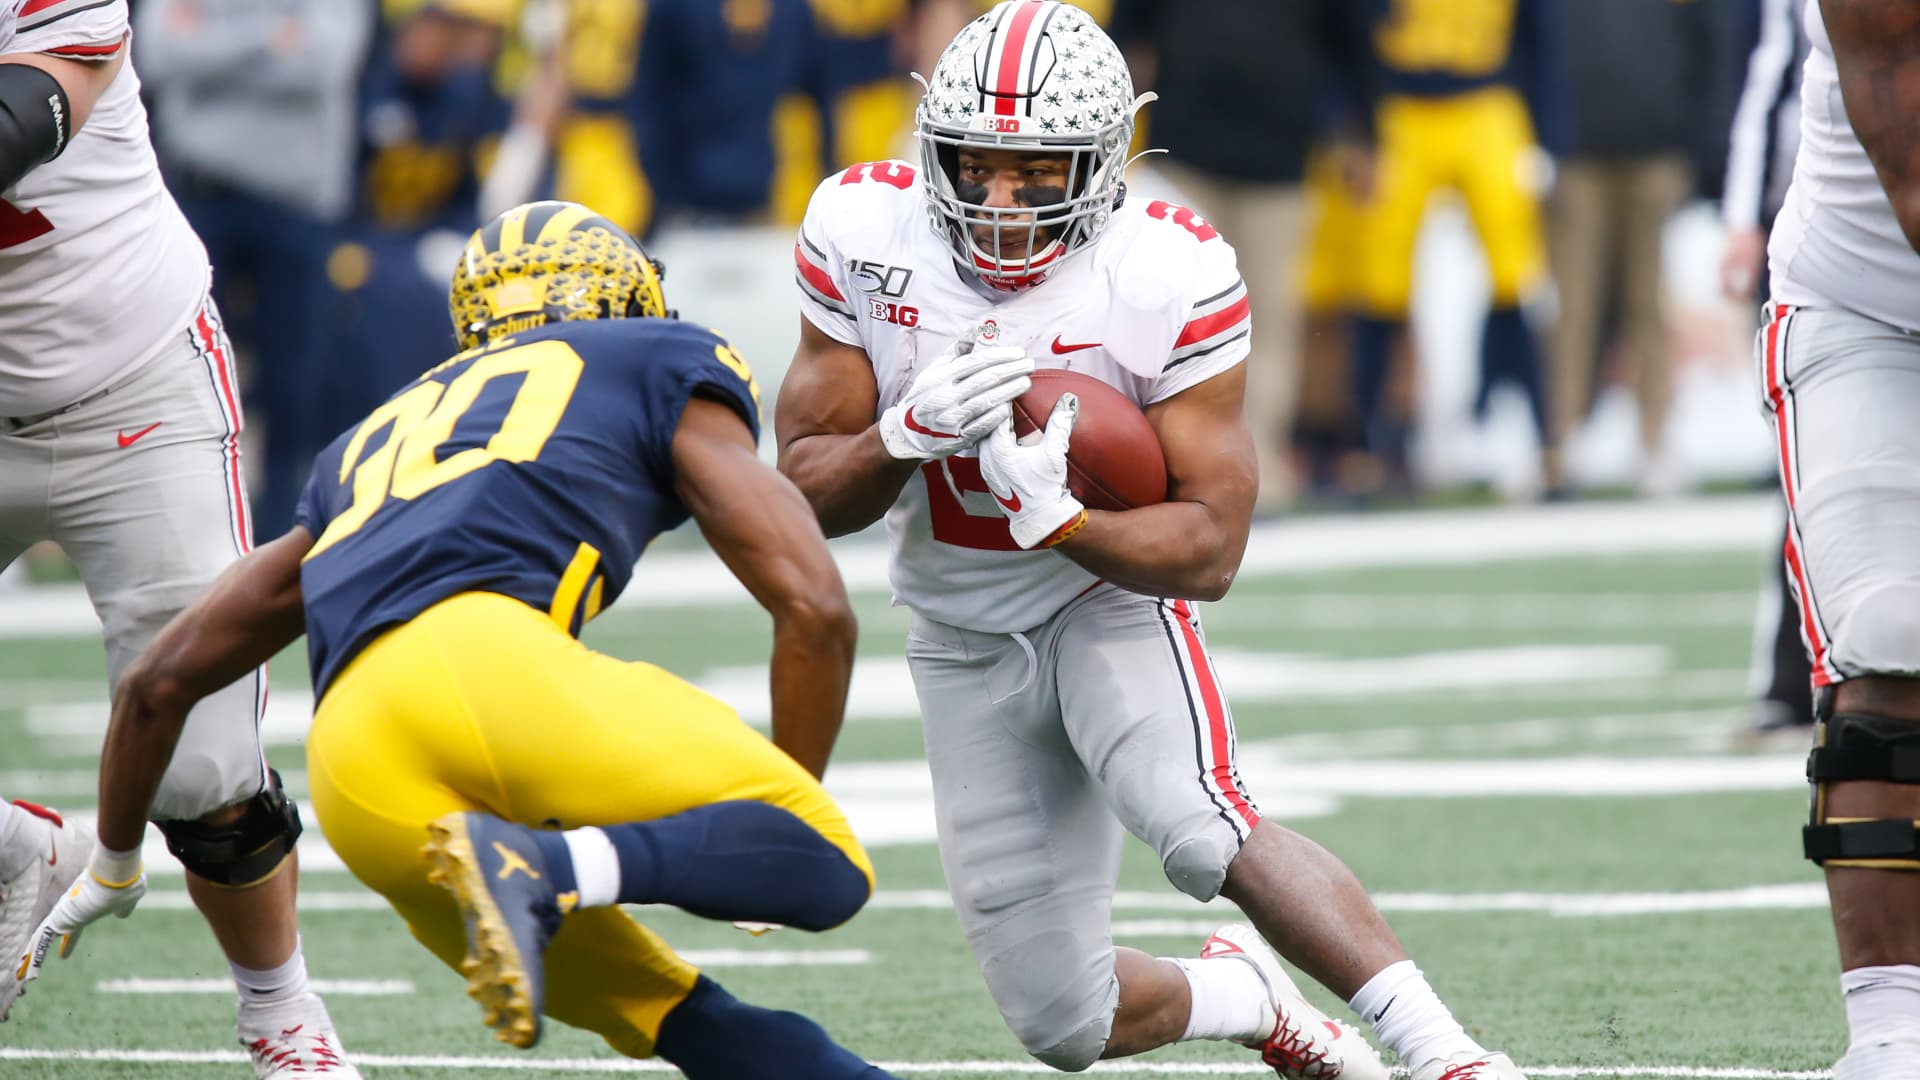 Ohio State Buckeyes running back J.K. Dobbins (2) runs with the ball while trying to avoid being tackled by Michigan Wolverines defensive back Daxton Hill (30) during a regular season Big 10 Conference game between the Ohio State Buckeyes (2) and the Michigan Wolverines.